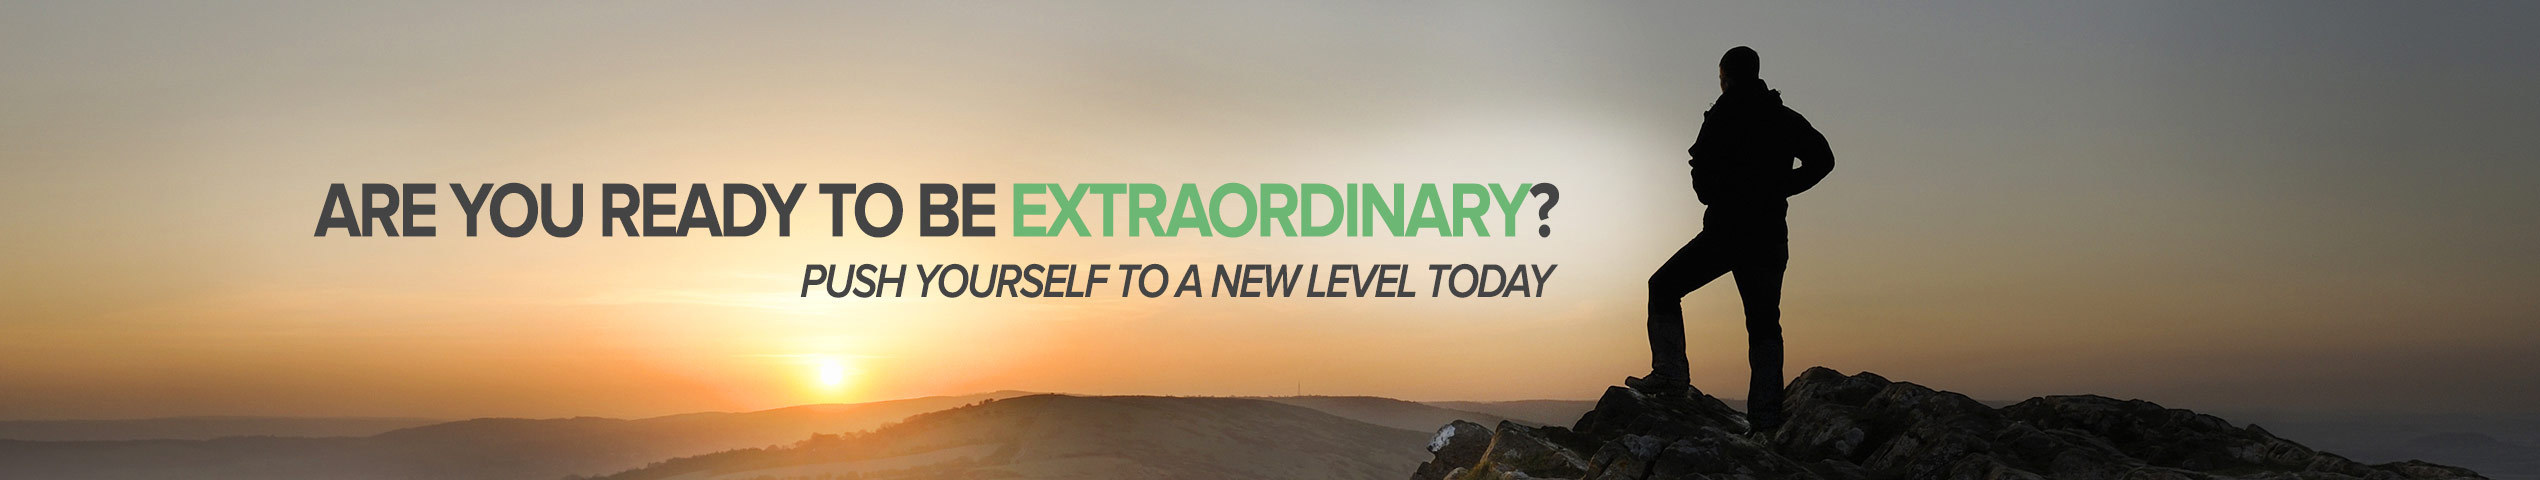 Are you ready to be extraordinary?